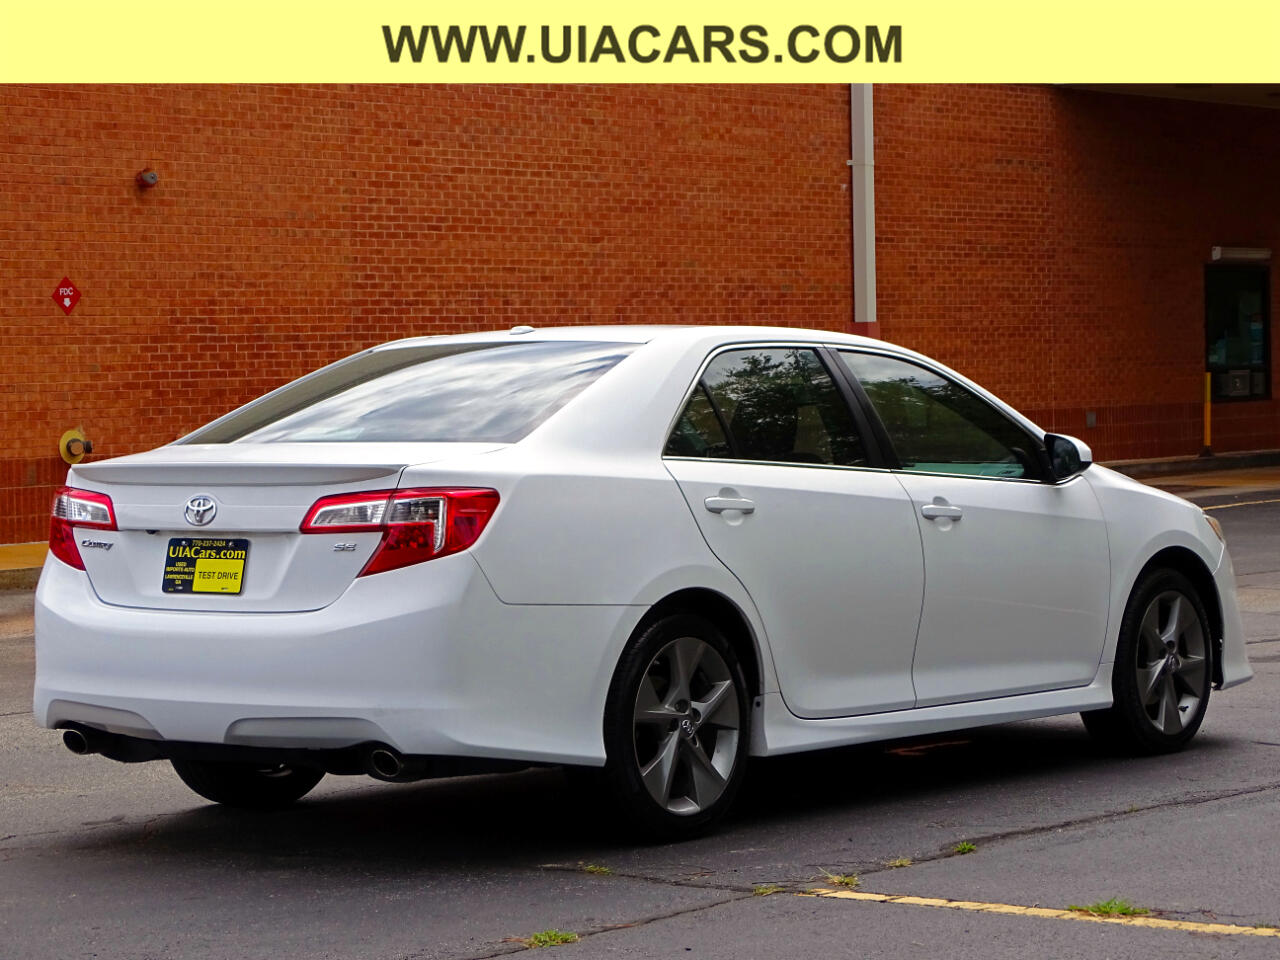 2013 Toyota Camry 4dr Sdn V6 Auto XLE (Natl)